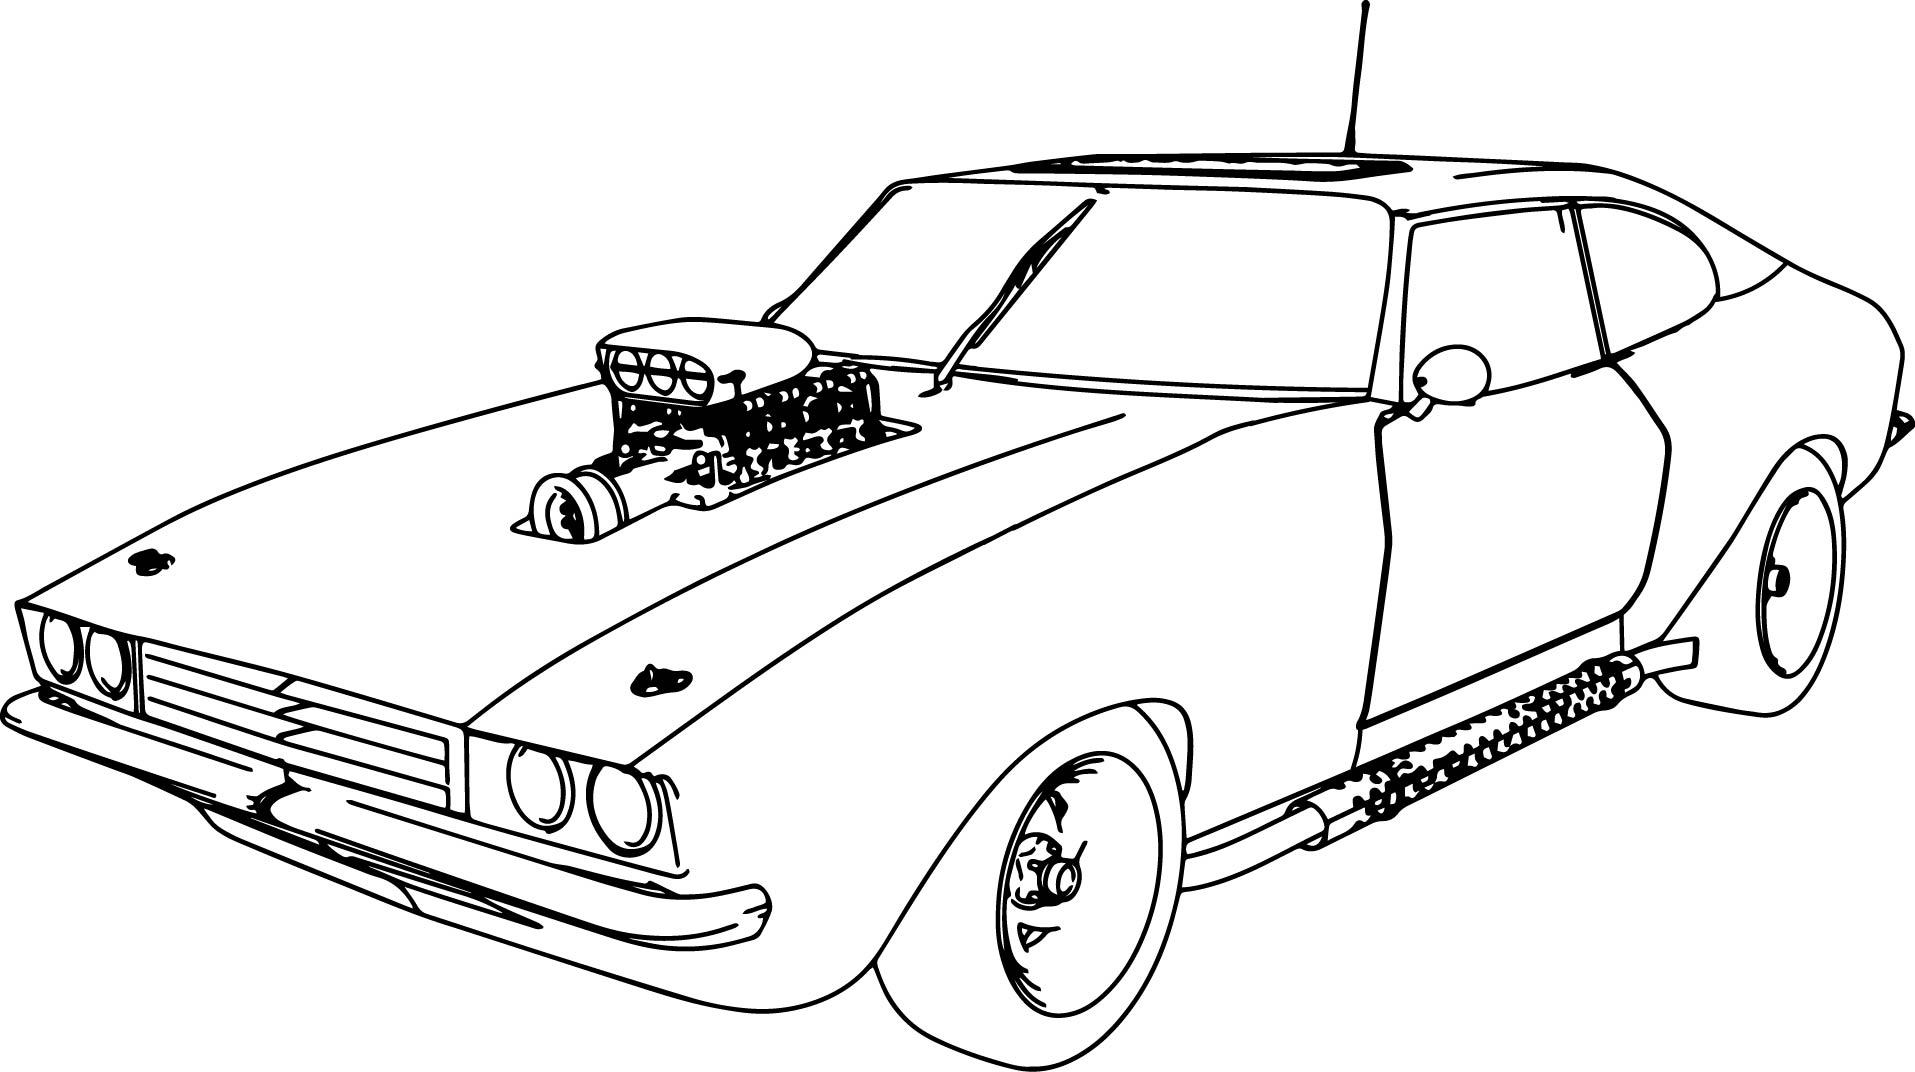 Muscle Car 70 Old Sport Car Coloring Page on demolition derby cars